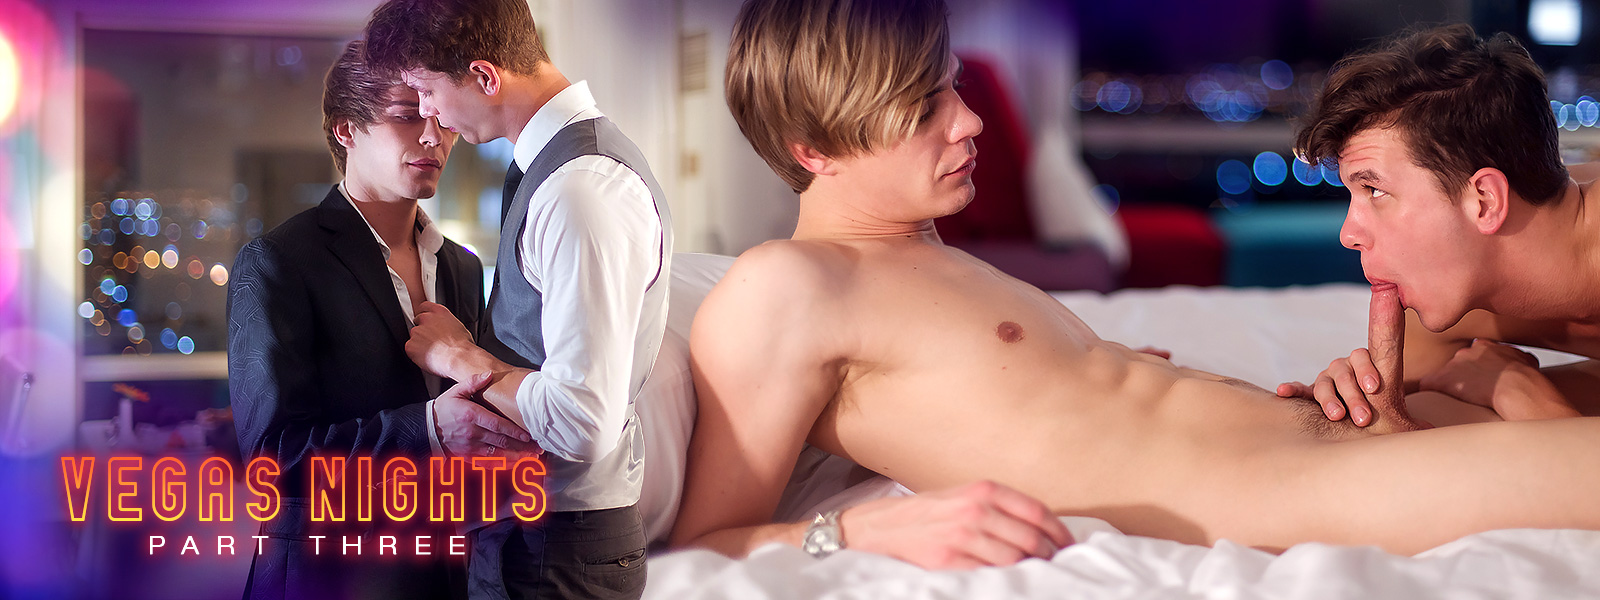 Helix Studios Vegas Nights: Part Three Featuring Johnny Hands and Kyle Ross